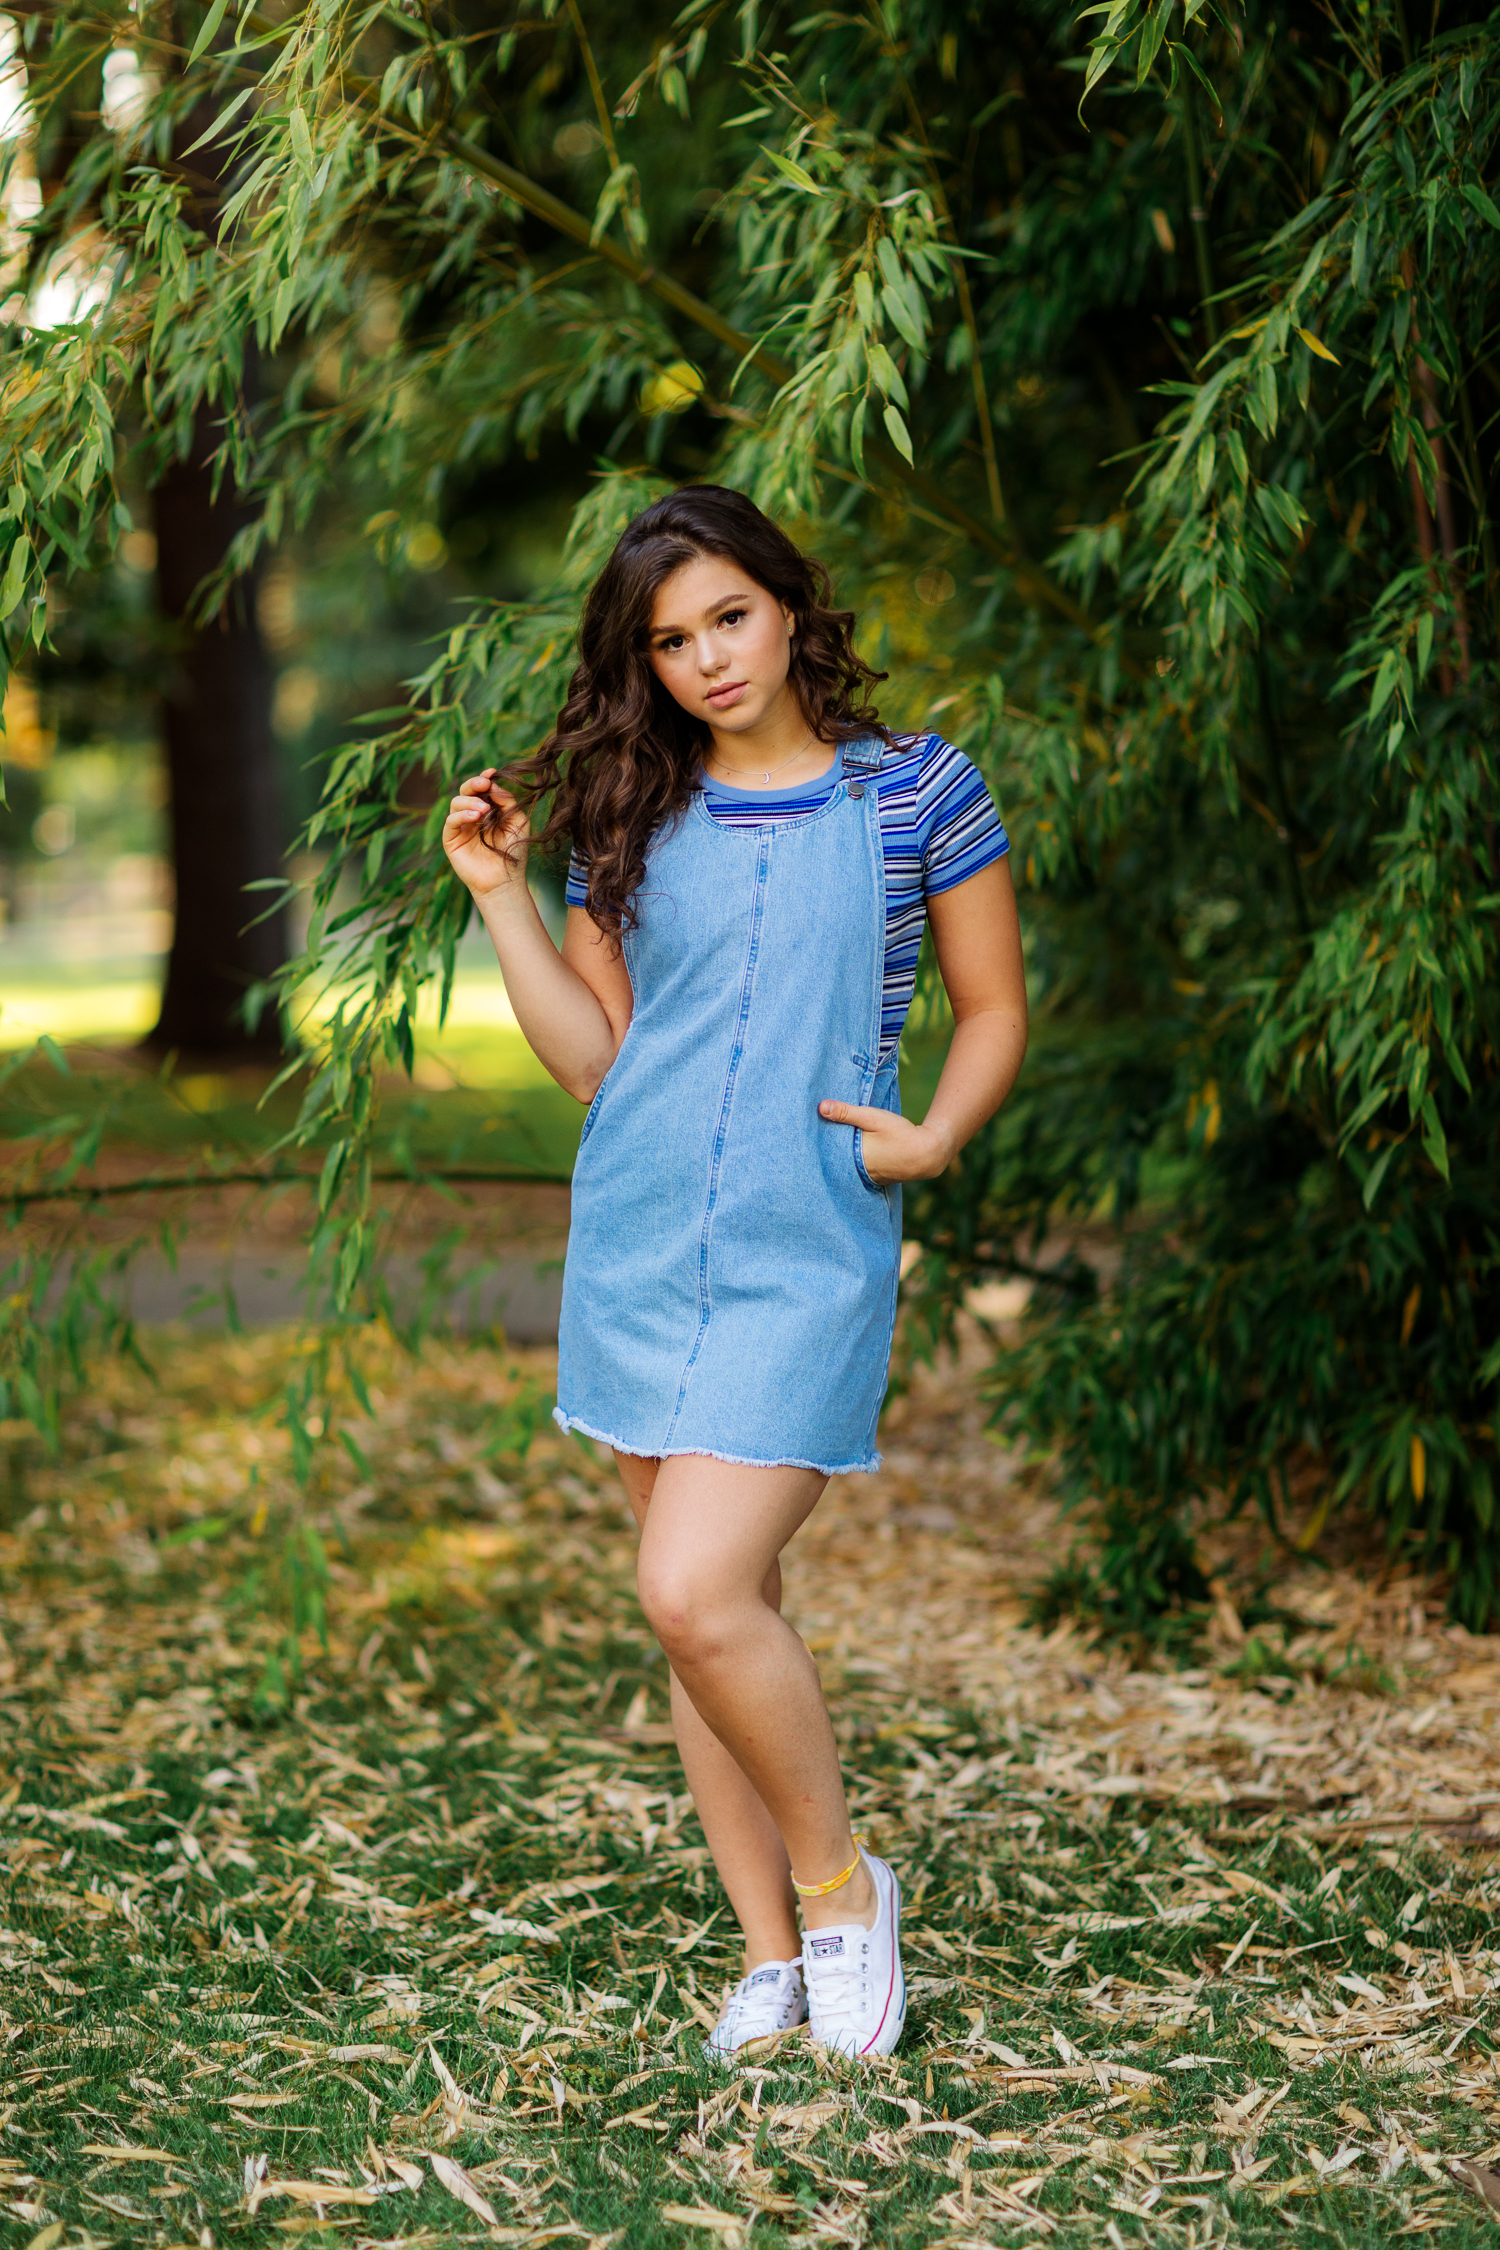 ariella-noelle-photography-Skyline-highschool-seattle-area-senior-portraits-bellevue-3.jpg